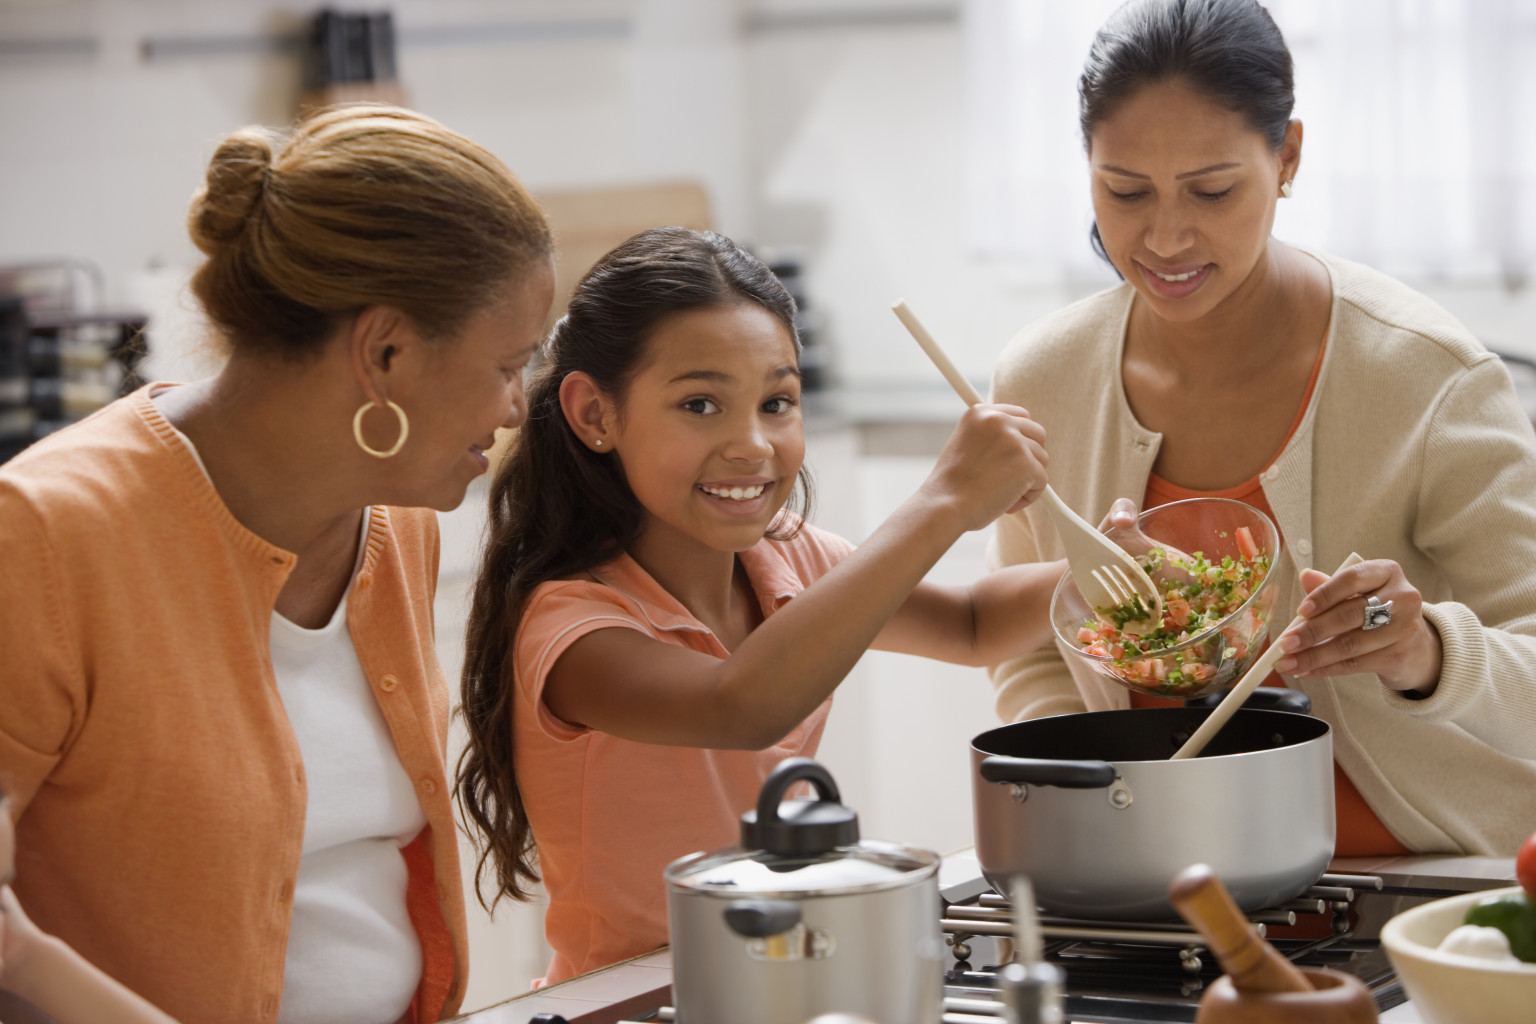 Cooking Fun Cooking Healthy With ChopChop Magazine and